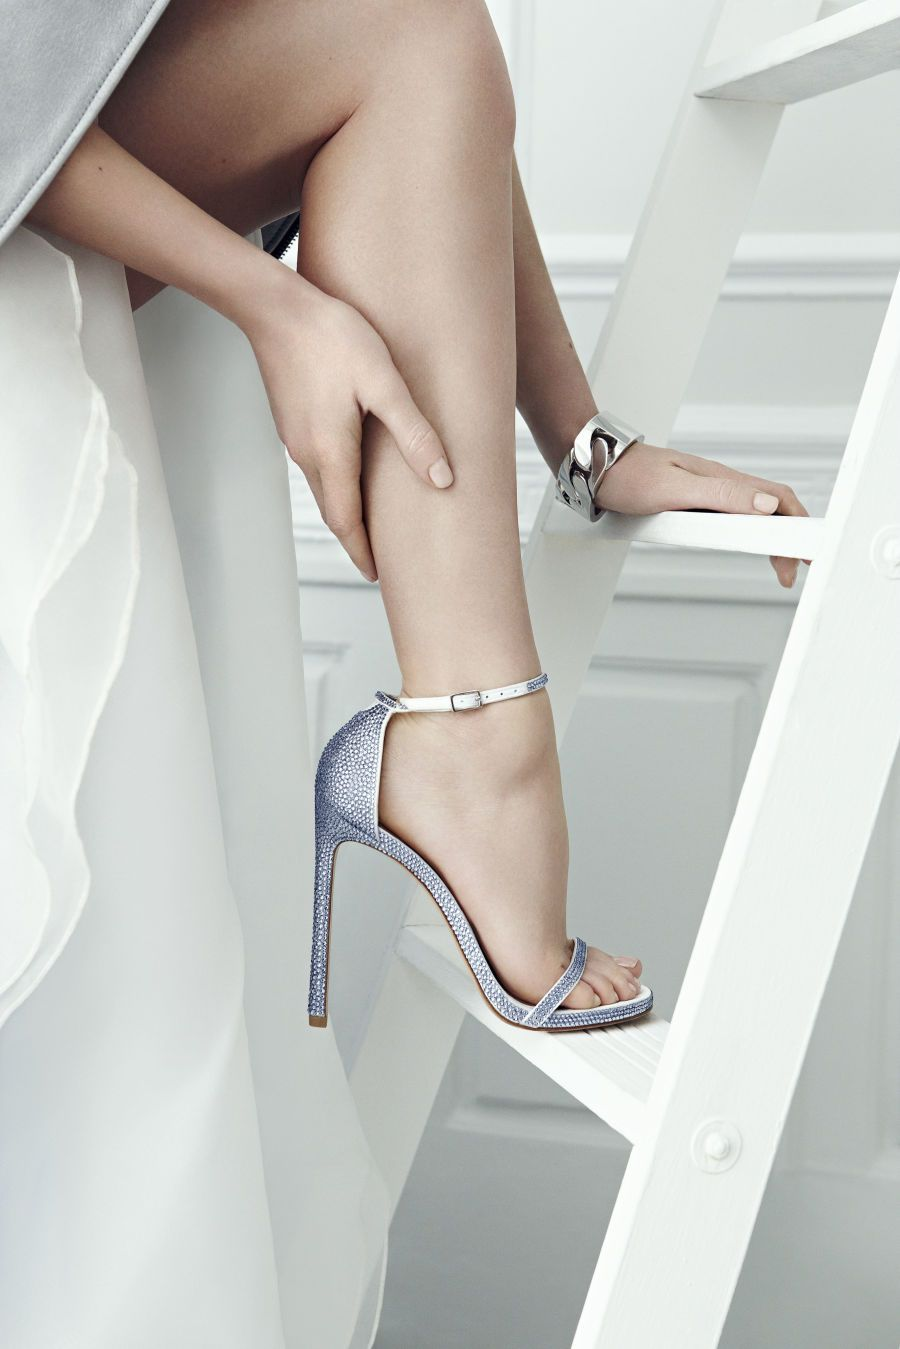 Our top reasons why a stuart weitzman bridal shoe is a total must